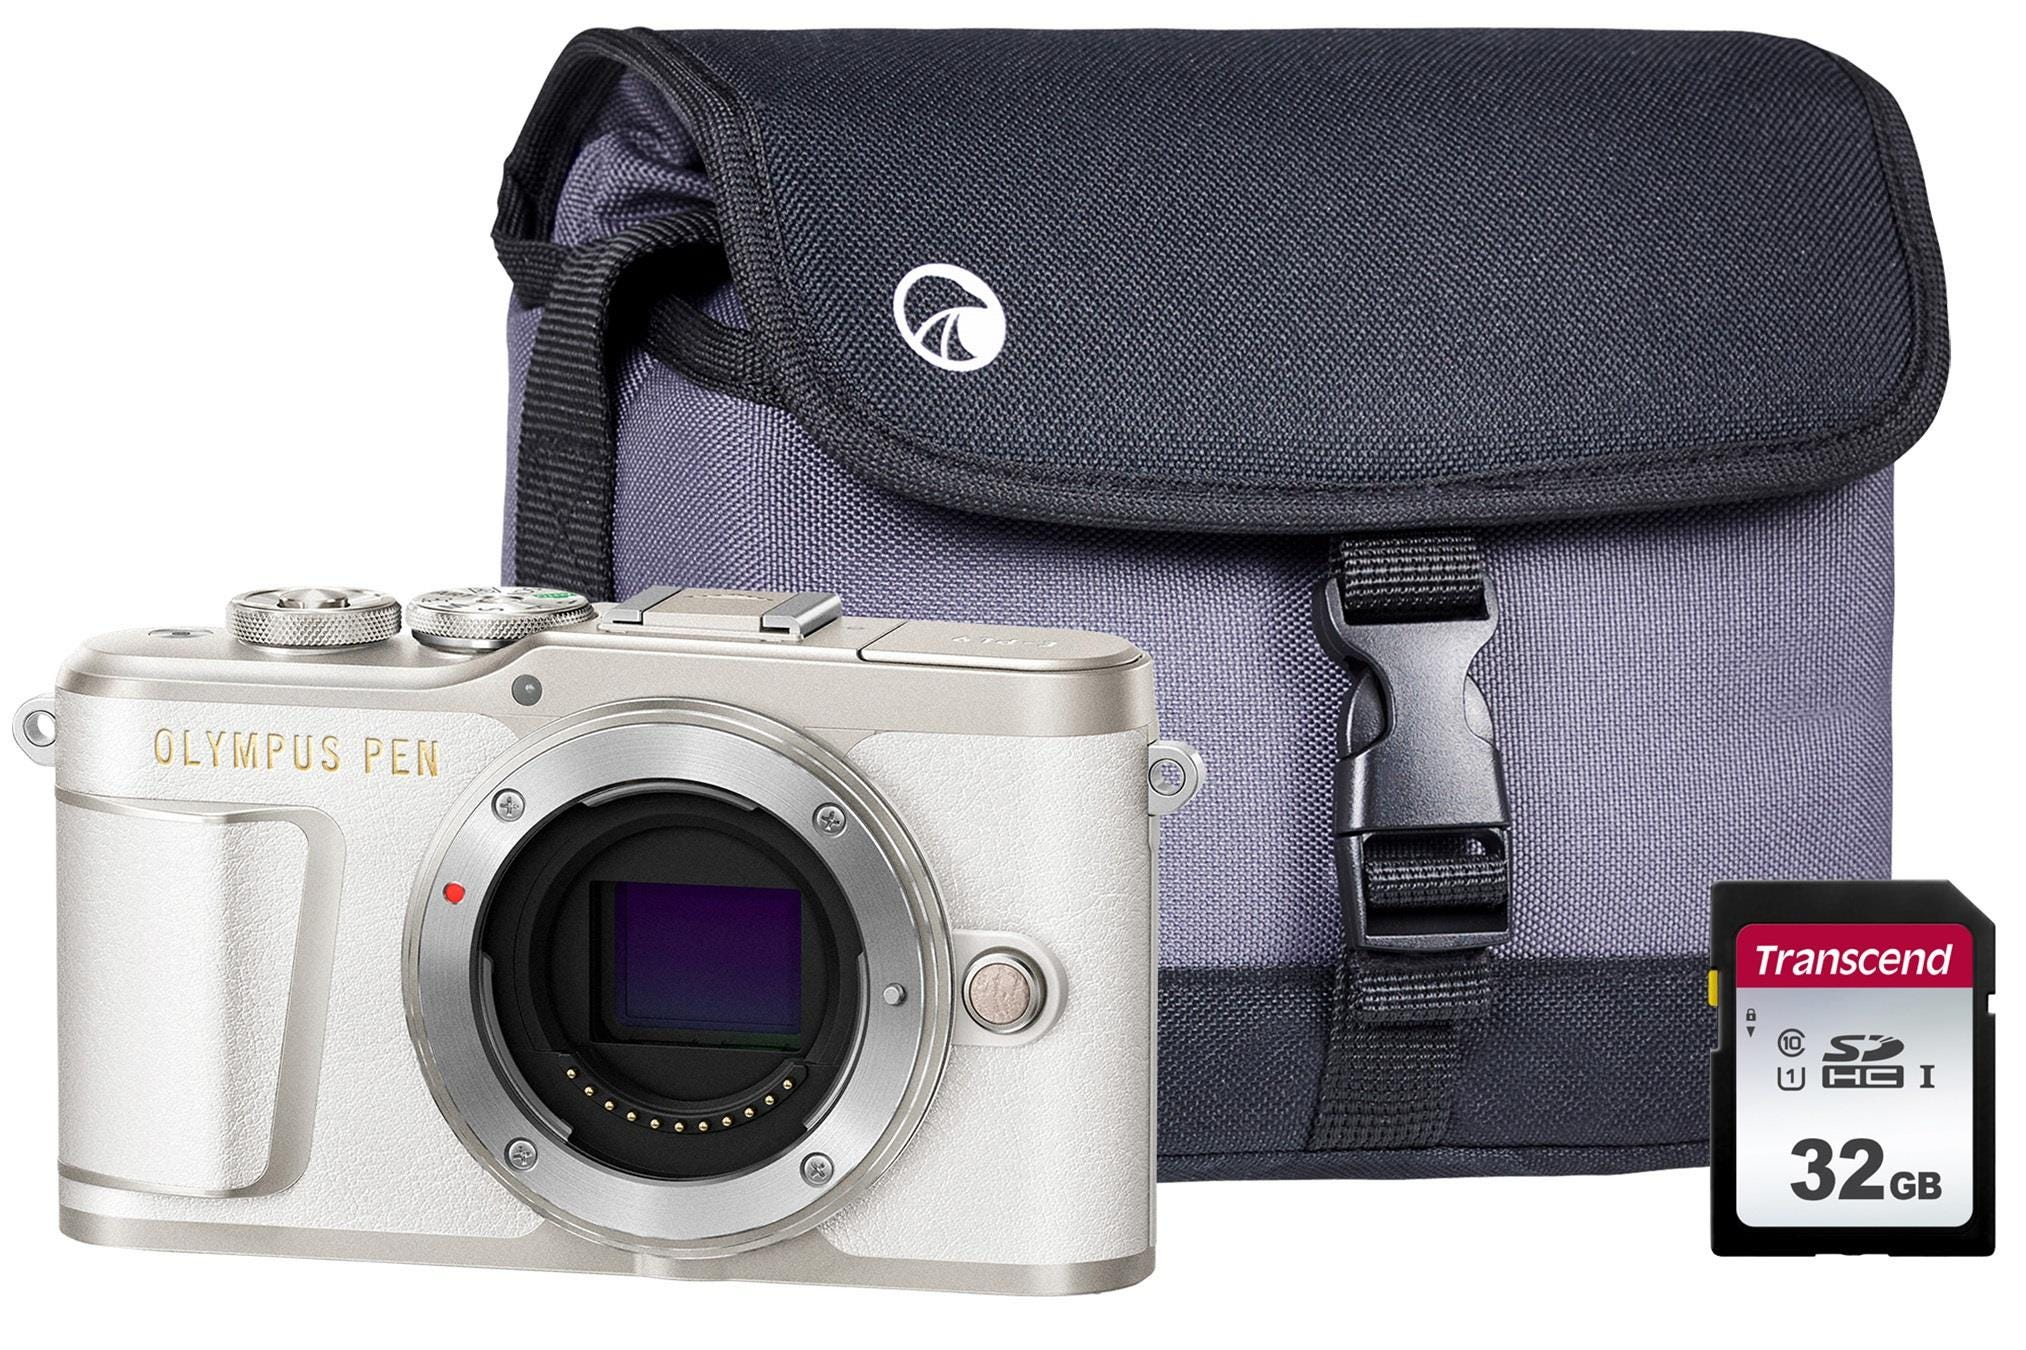 Olympus PEN E-PL9 Compact System Camera Body including Case & 32GB SD Card - White